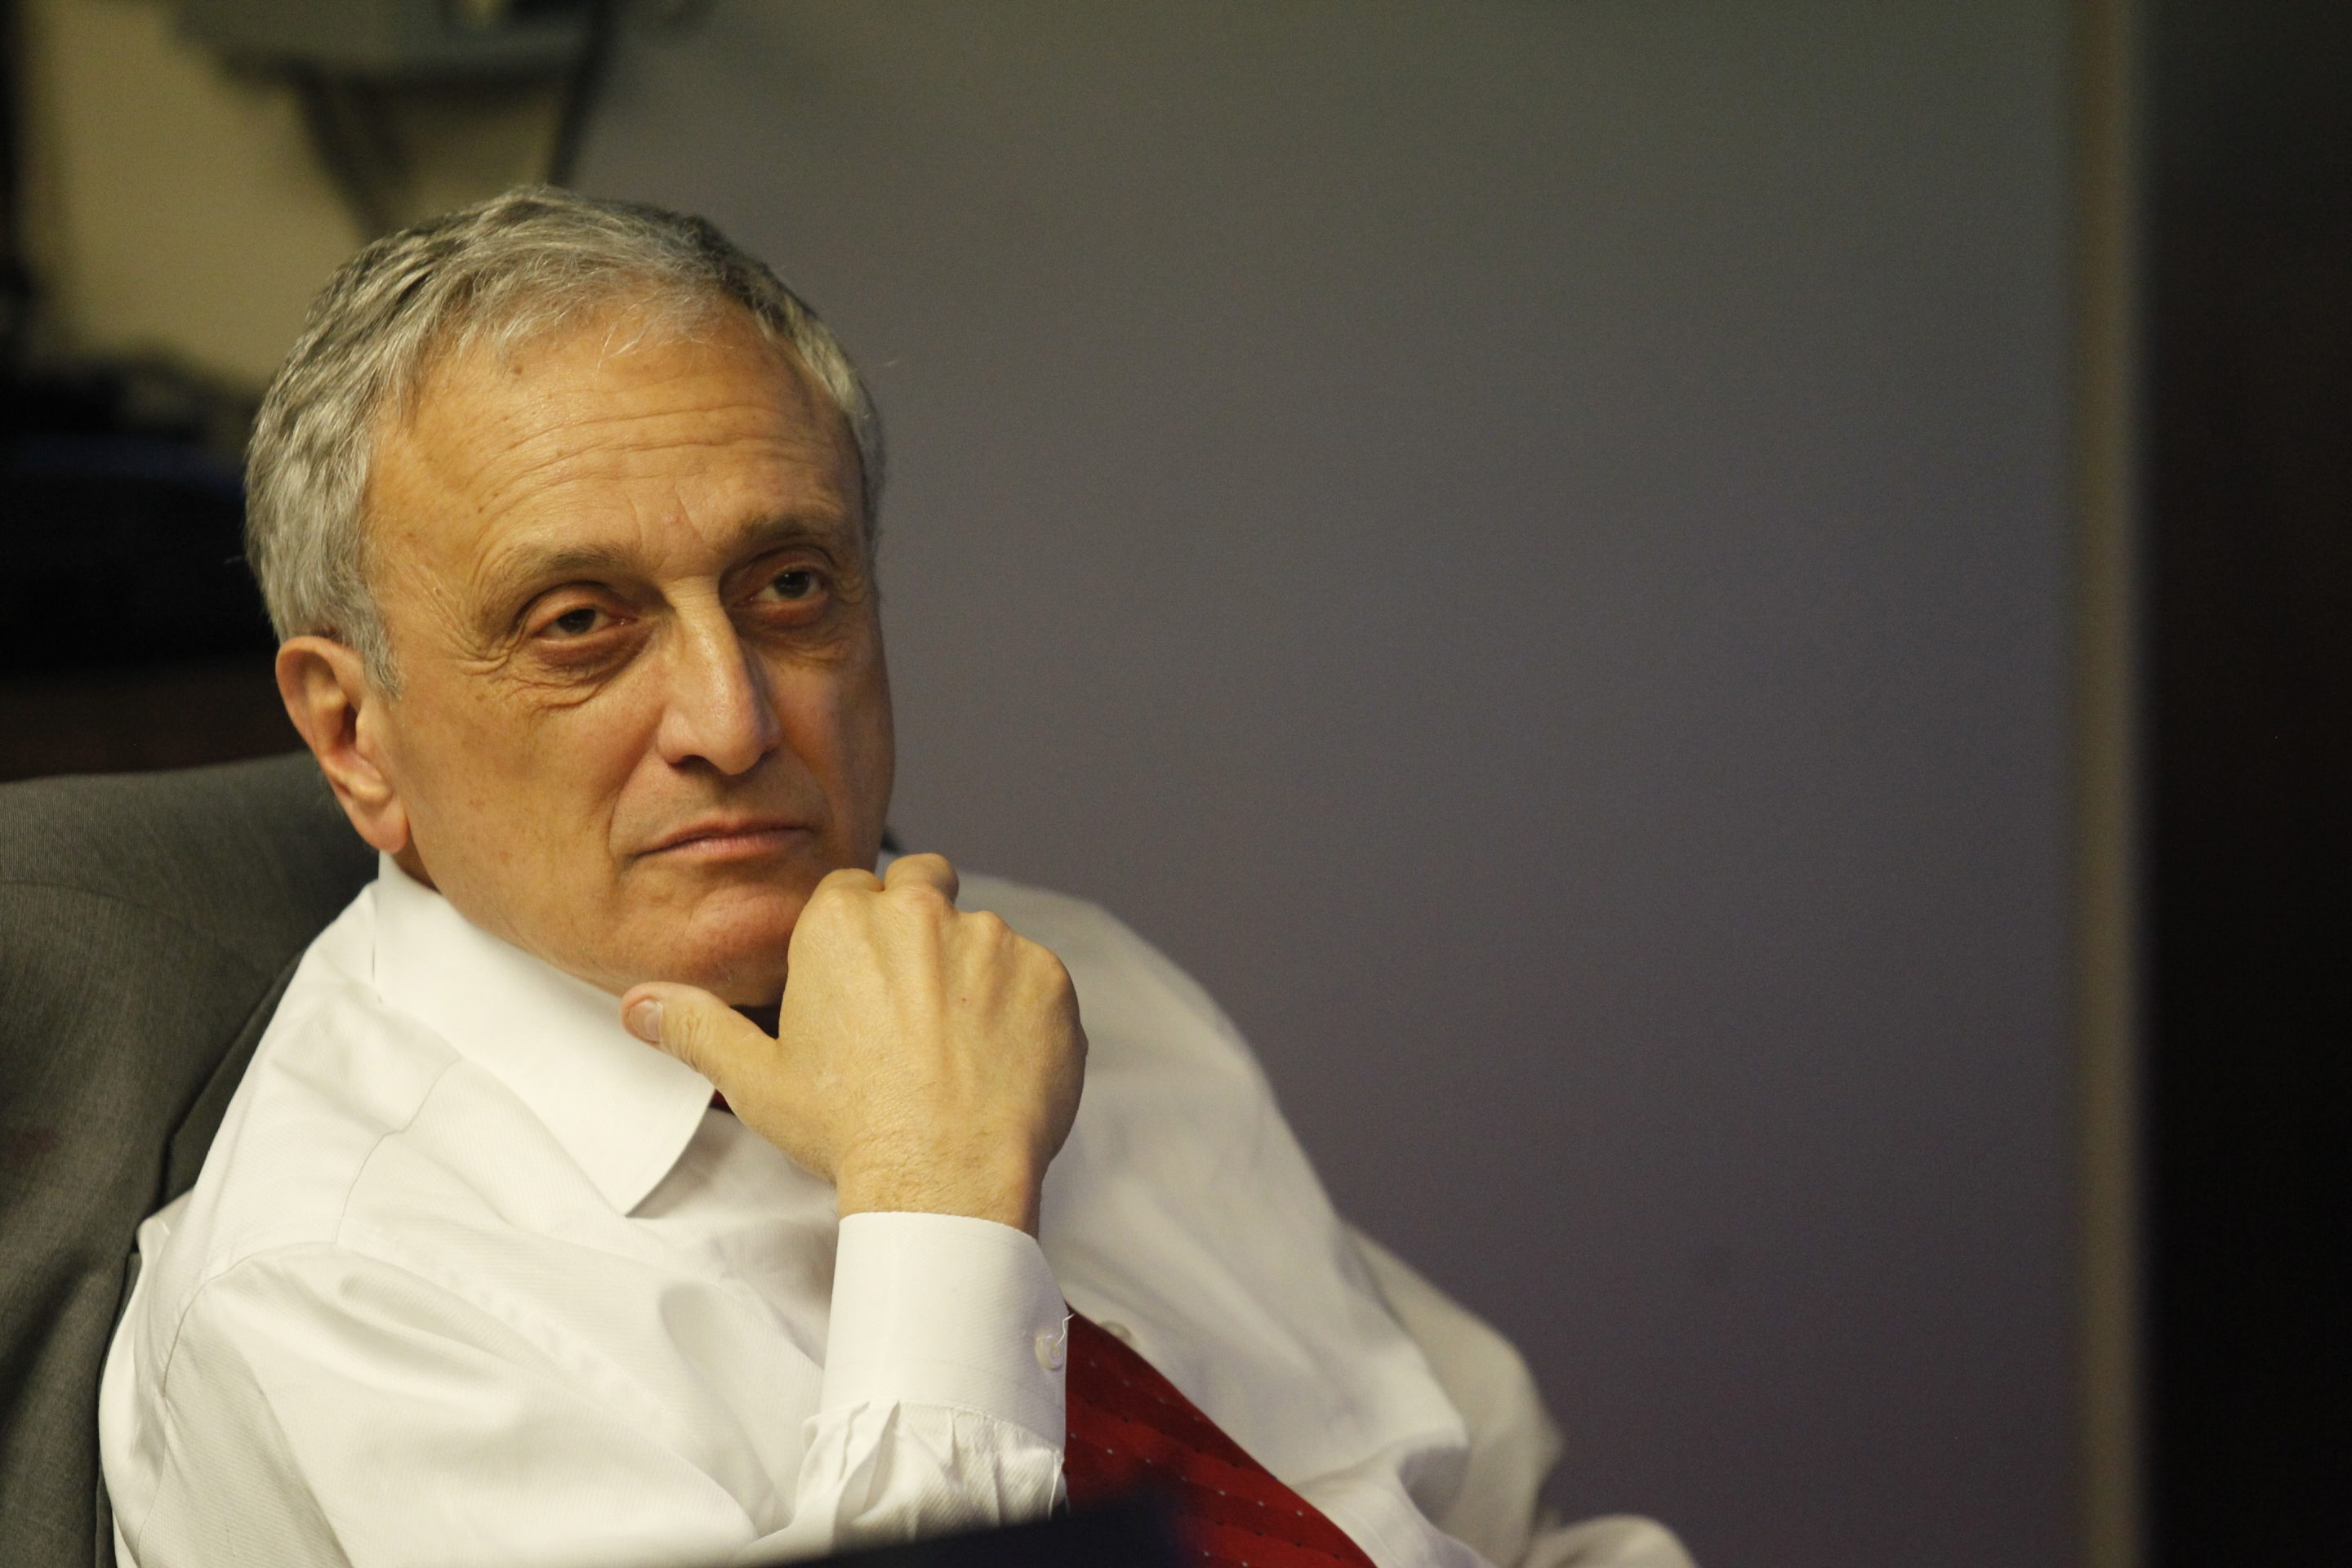 Buffalo School Board member Carl Paladino has made other racially insensitive comments in the past.